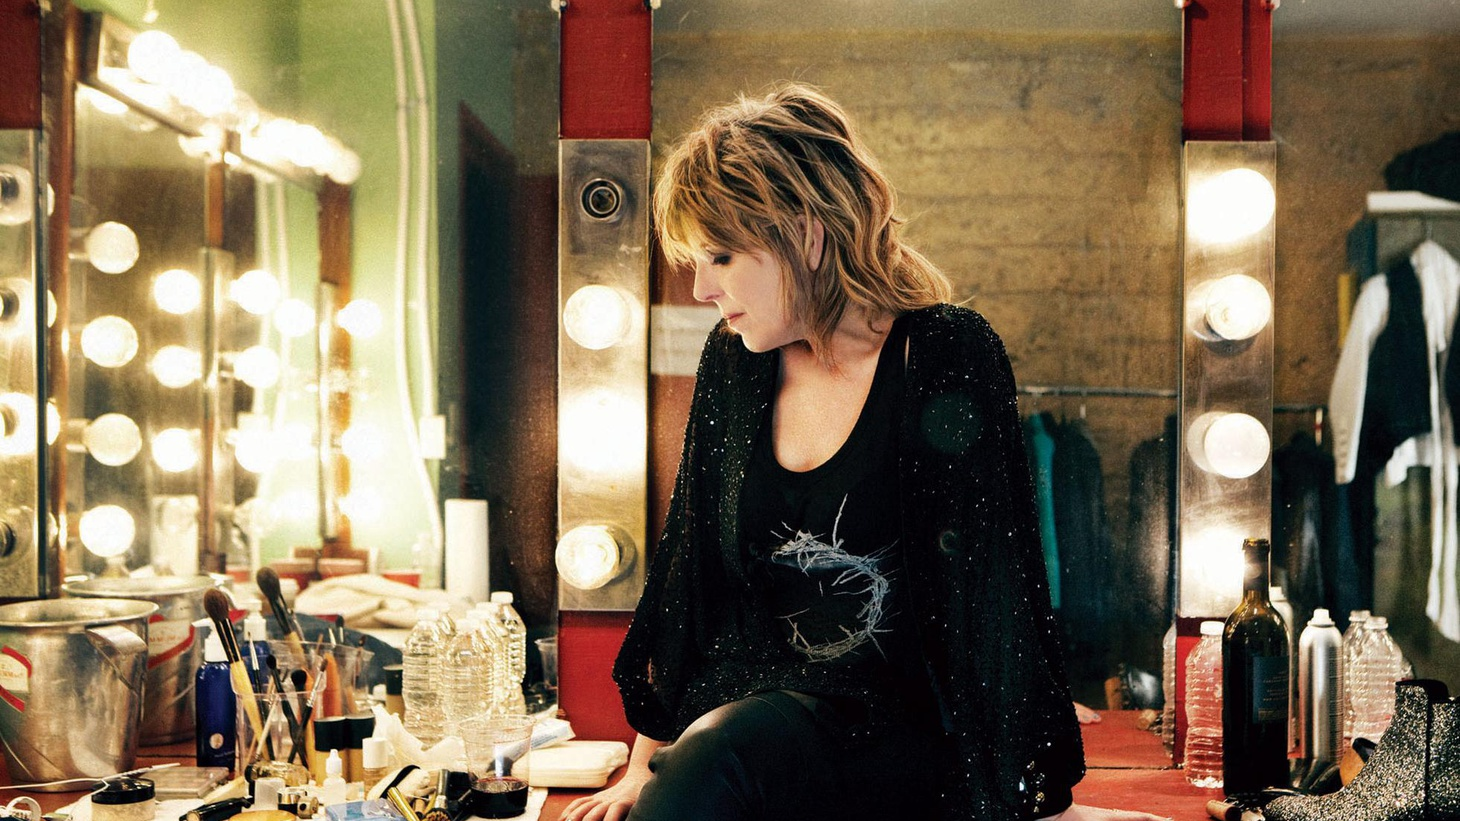 """Three-time Grammy Award-winner Lucinda Williams sat down at her kitchen table to write a series of new songs that are intimate vignettes. These captured moments contemplate an array of weighty matters revealed in a conversational style. Today's Top Tune is a snapshot of a moment when she learns of the passing of an old friend on """"Copenhagen,"""" from her CD, Blessed."""